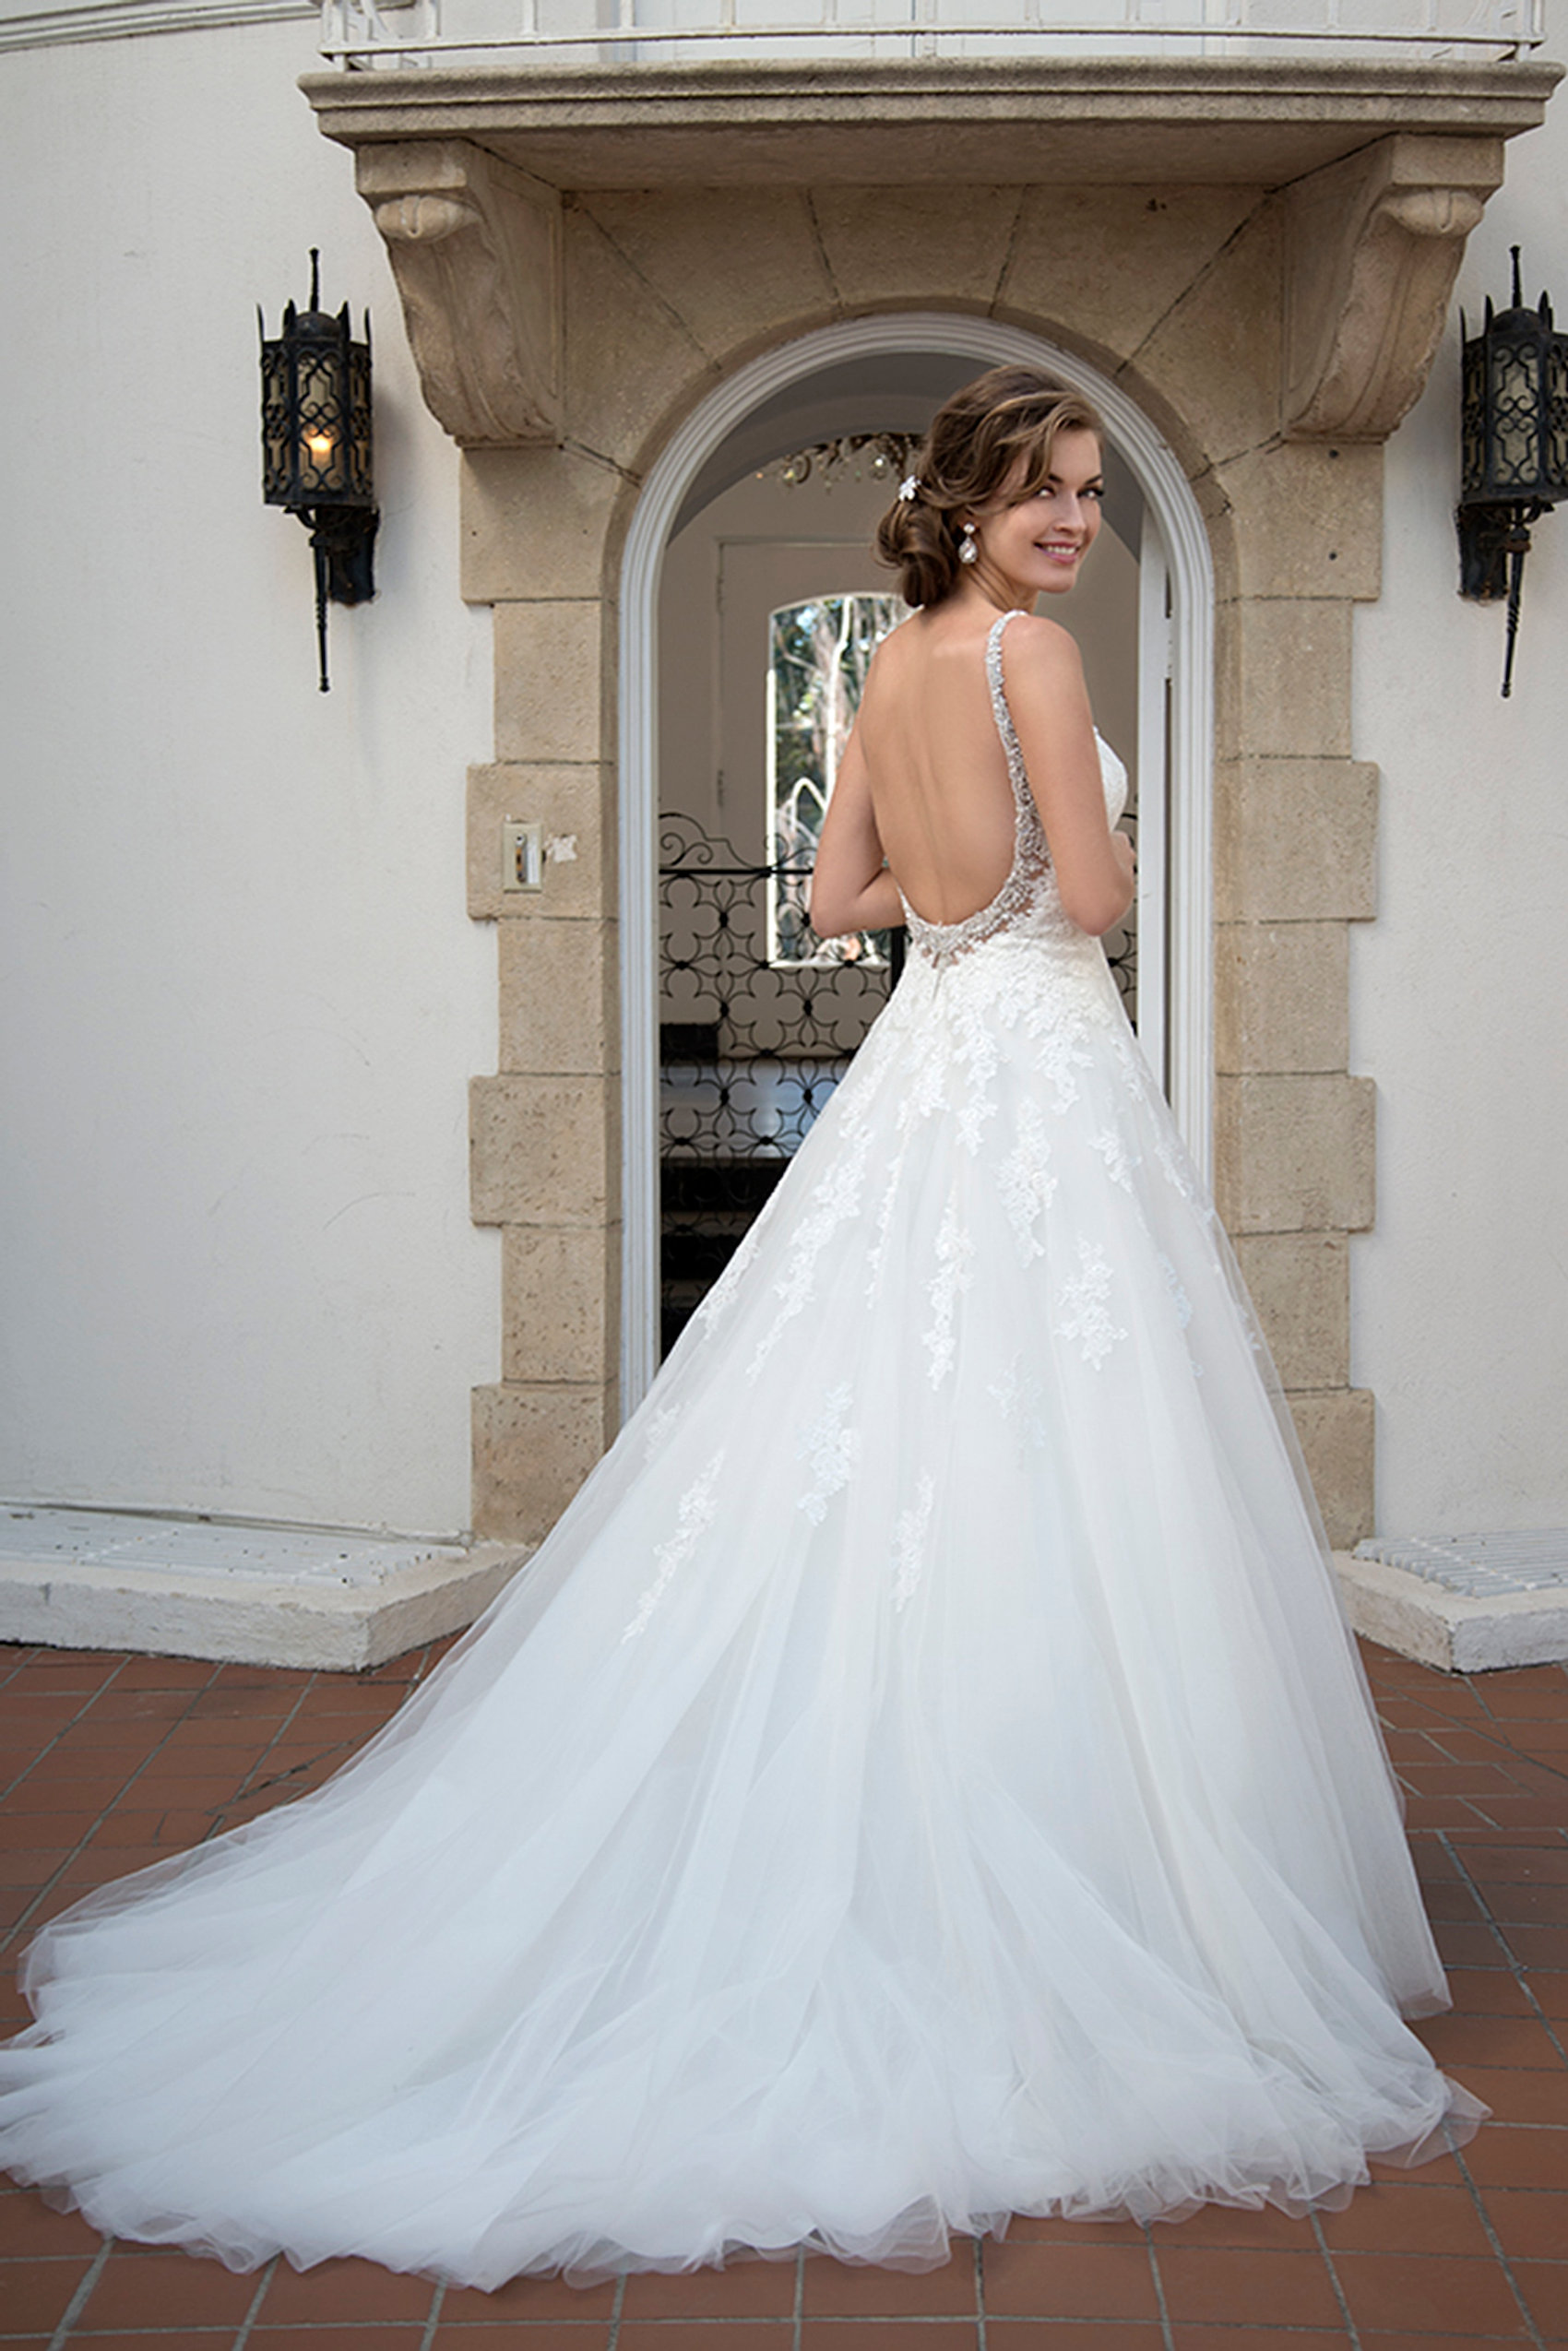 Stunning Lace And Tulle Gown With Full Skirt Bodice Embellished Spaghetti Straps Going Into Low Back Detail To